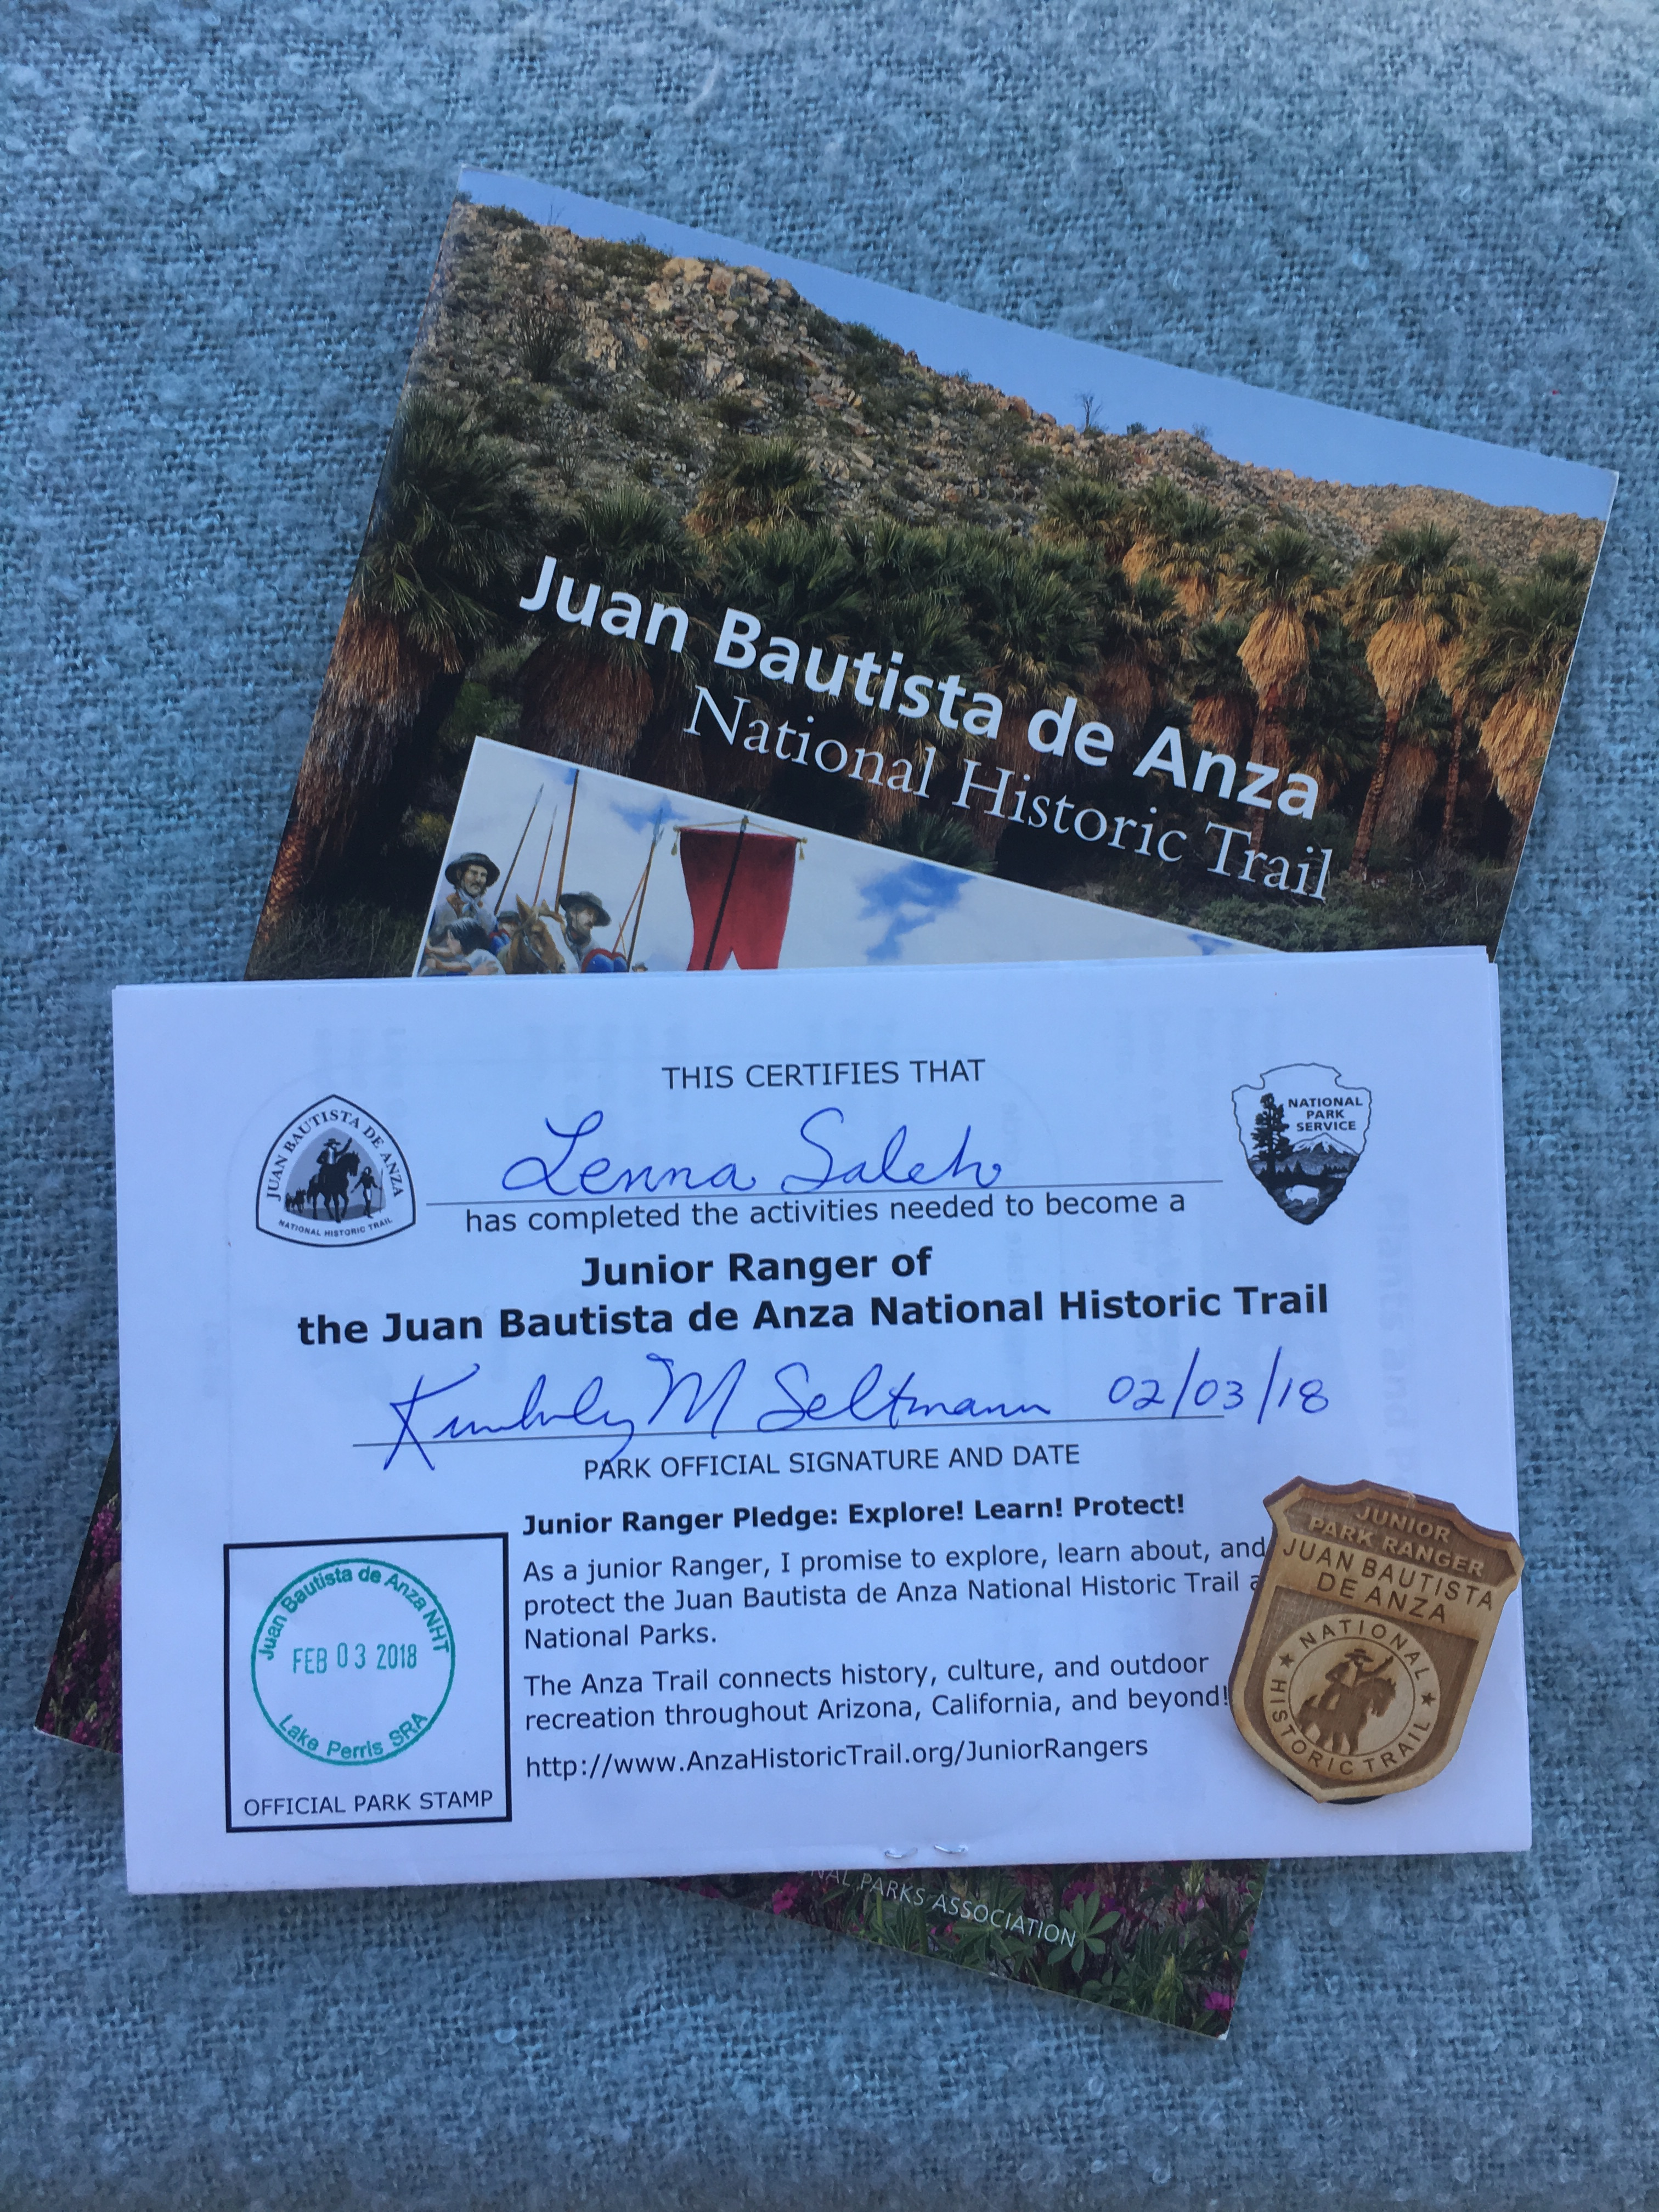 A complete junior ranger certificate, badge, and book about the Anza Trail.